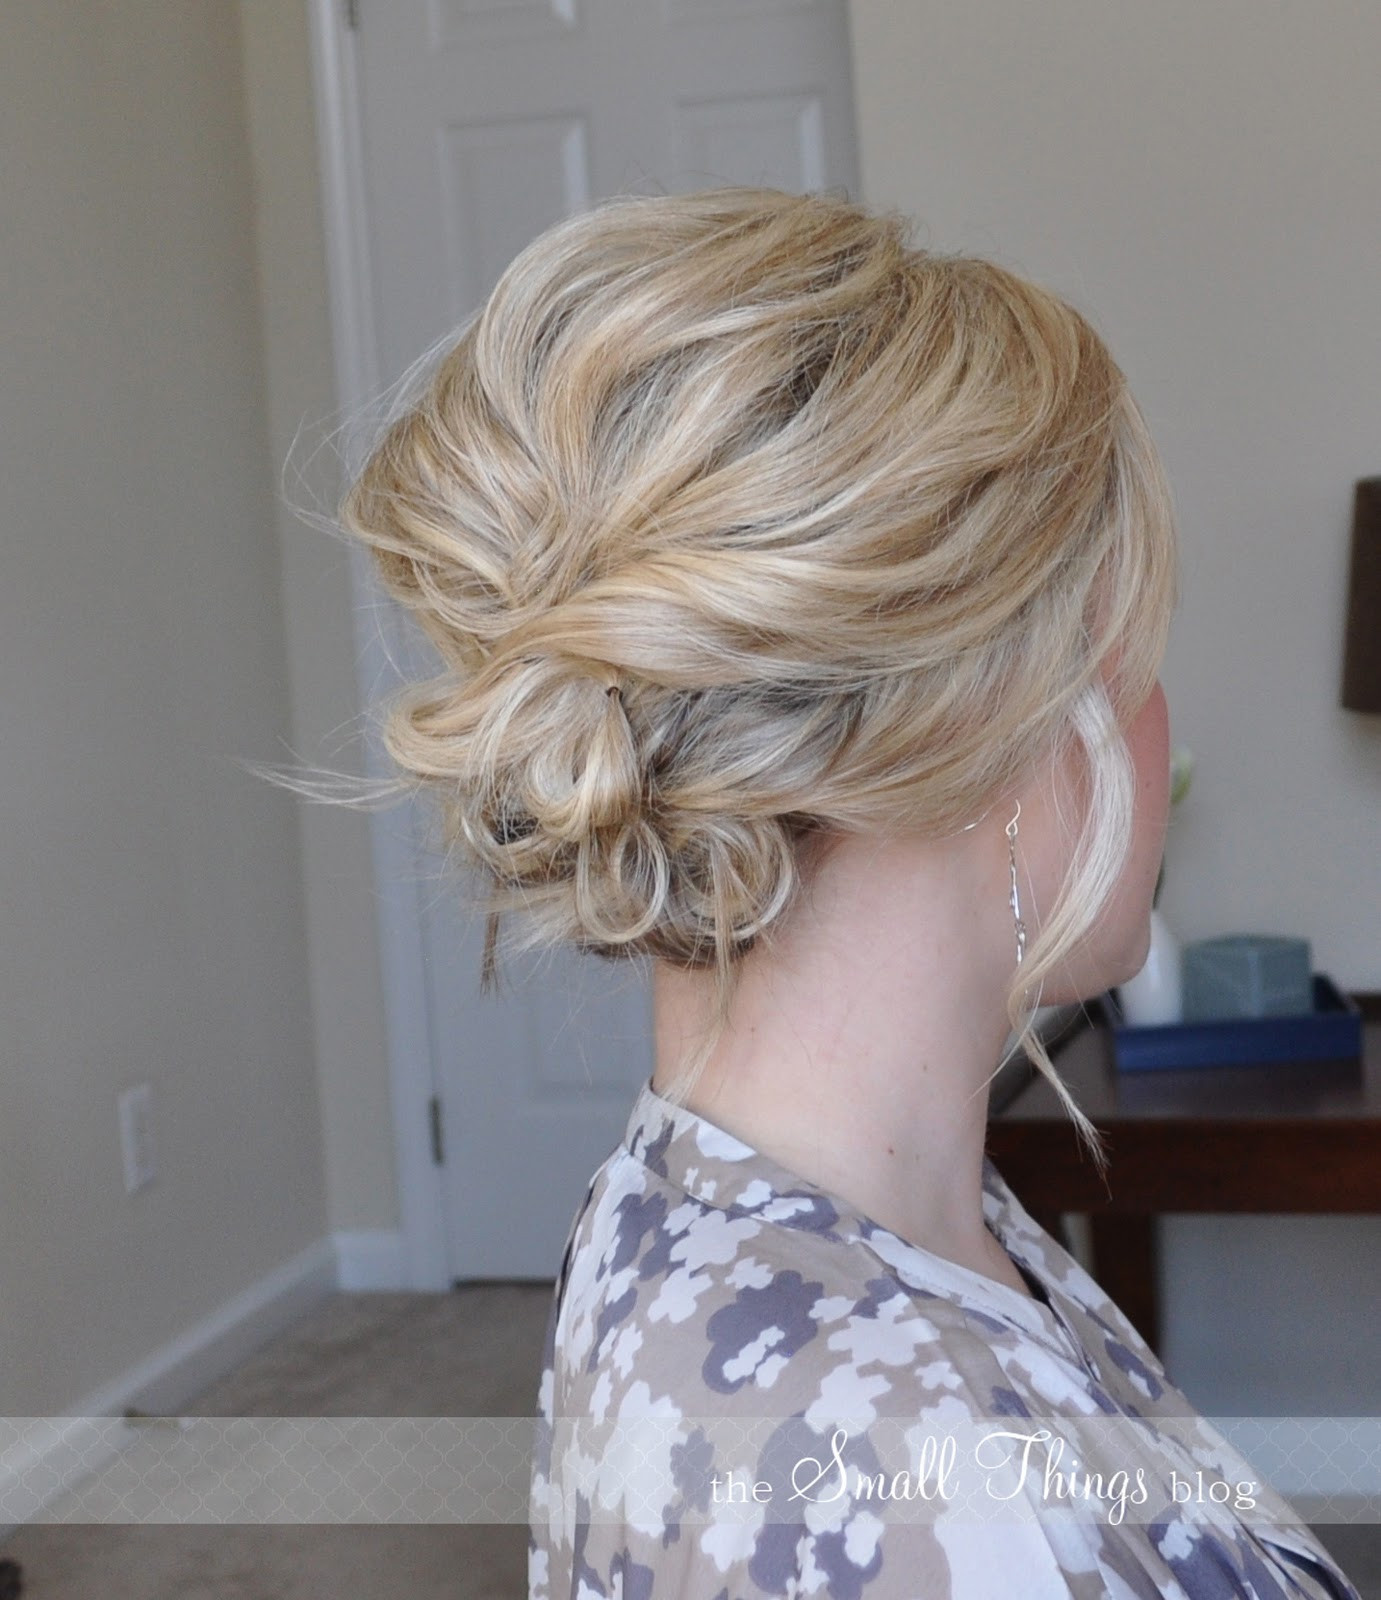 Best ideas about Updo Hairstyles For Short Hair . Save or Pin The Messy Side Updo – The Small Things Blog Now.